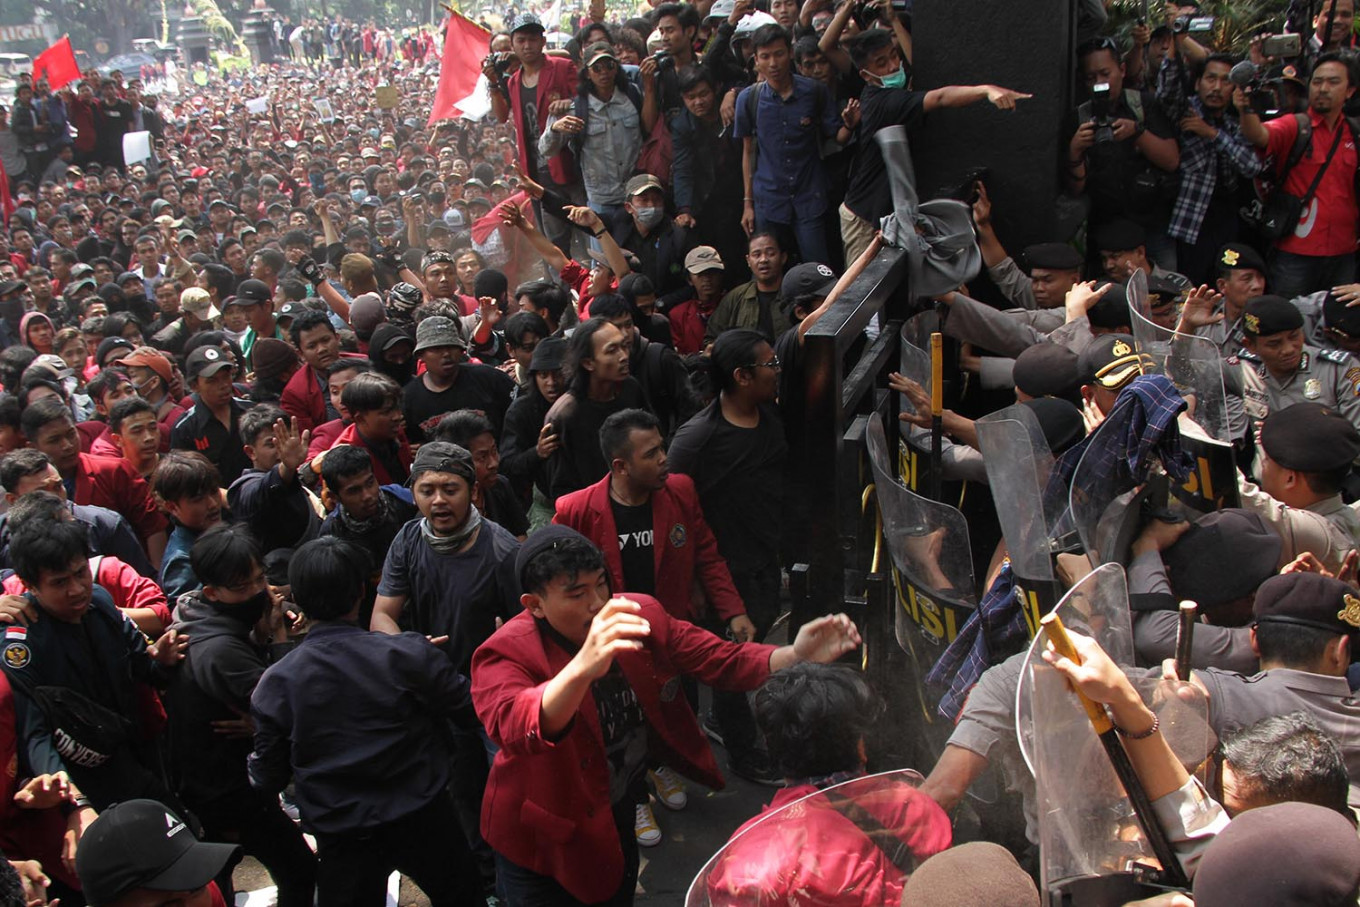 University students in Malang push against a barricade of police officers in an attempt to enter the Malang Legislative Council compound in Malang, East Java, on Sept. 24, during a student protests against the agrarian reform bill and the Criminal Code revision bill. Their attempt led to a clash with the police, with some students and police officers being injured. Antara/Ari Bowo Sucipto